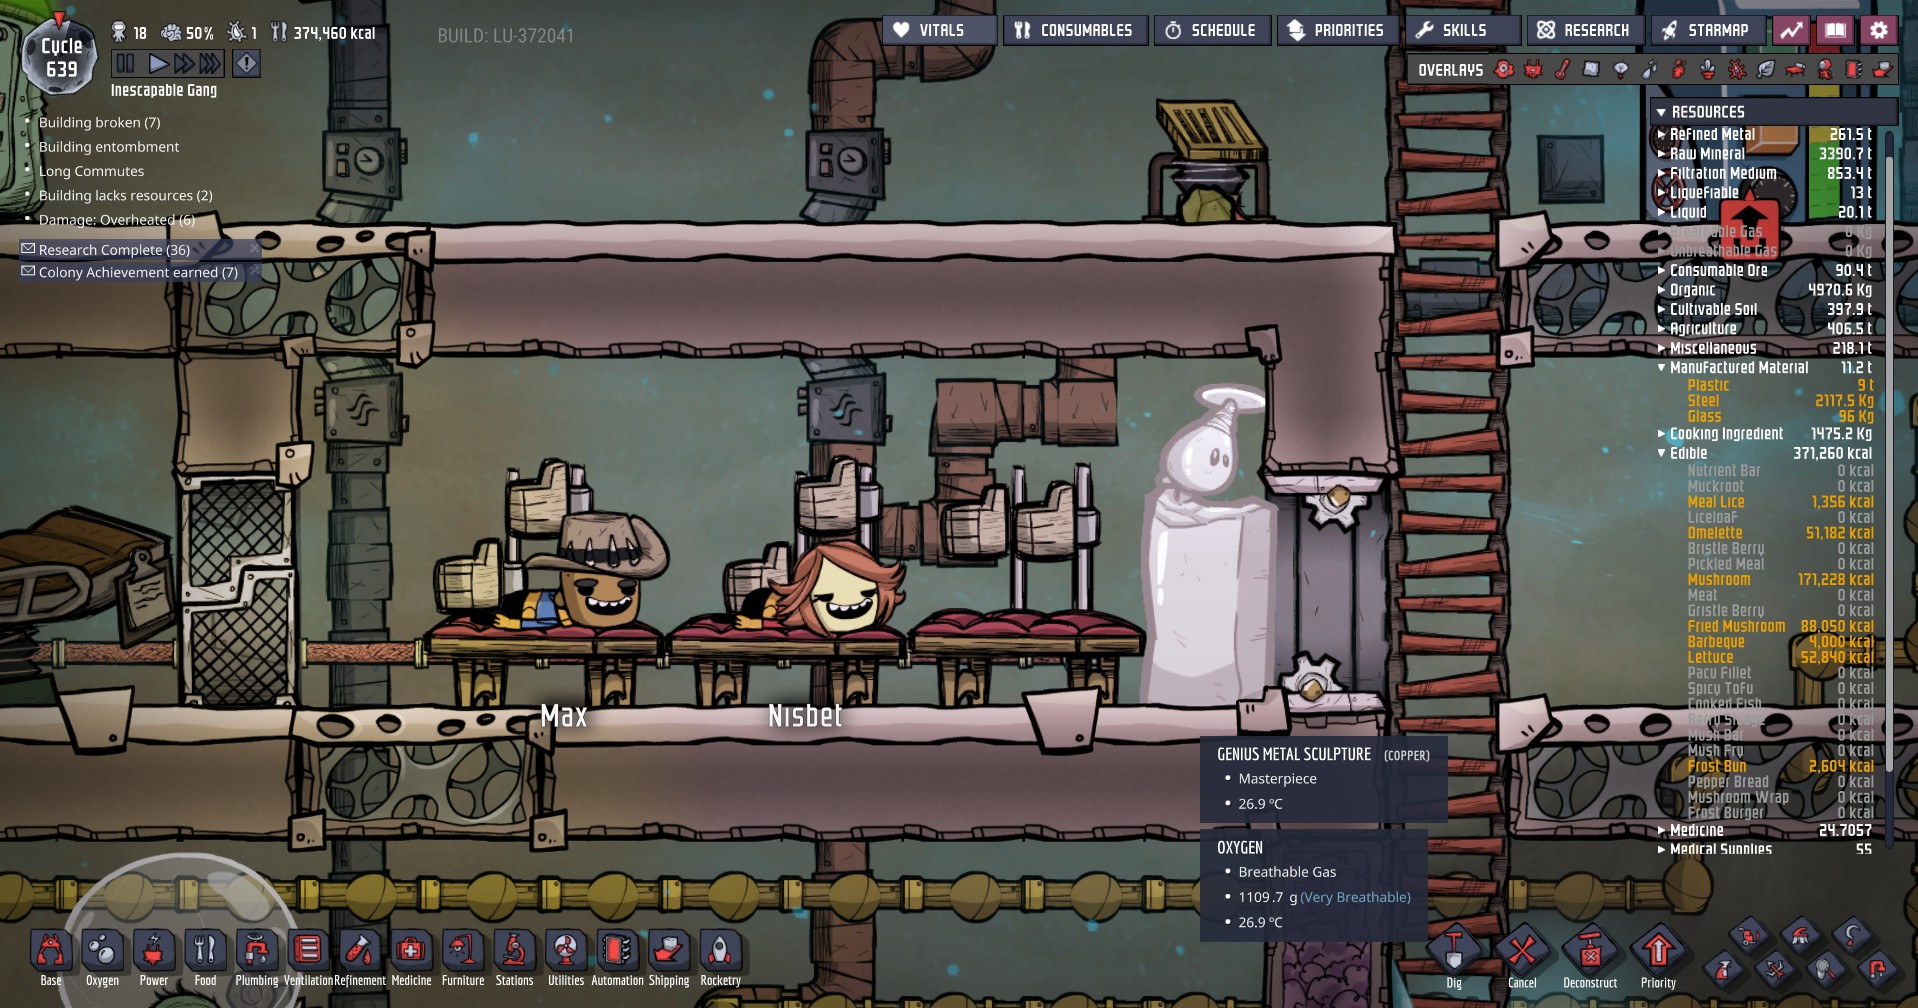 Oxygen Not Included: Spa Day